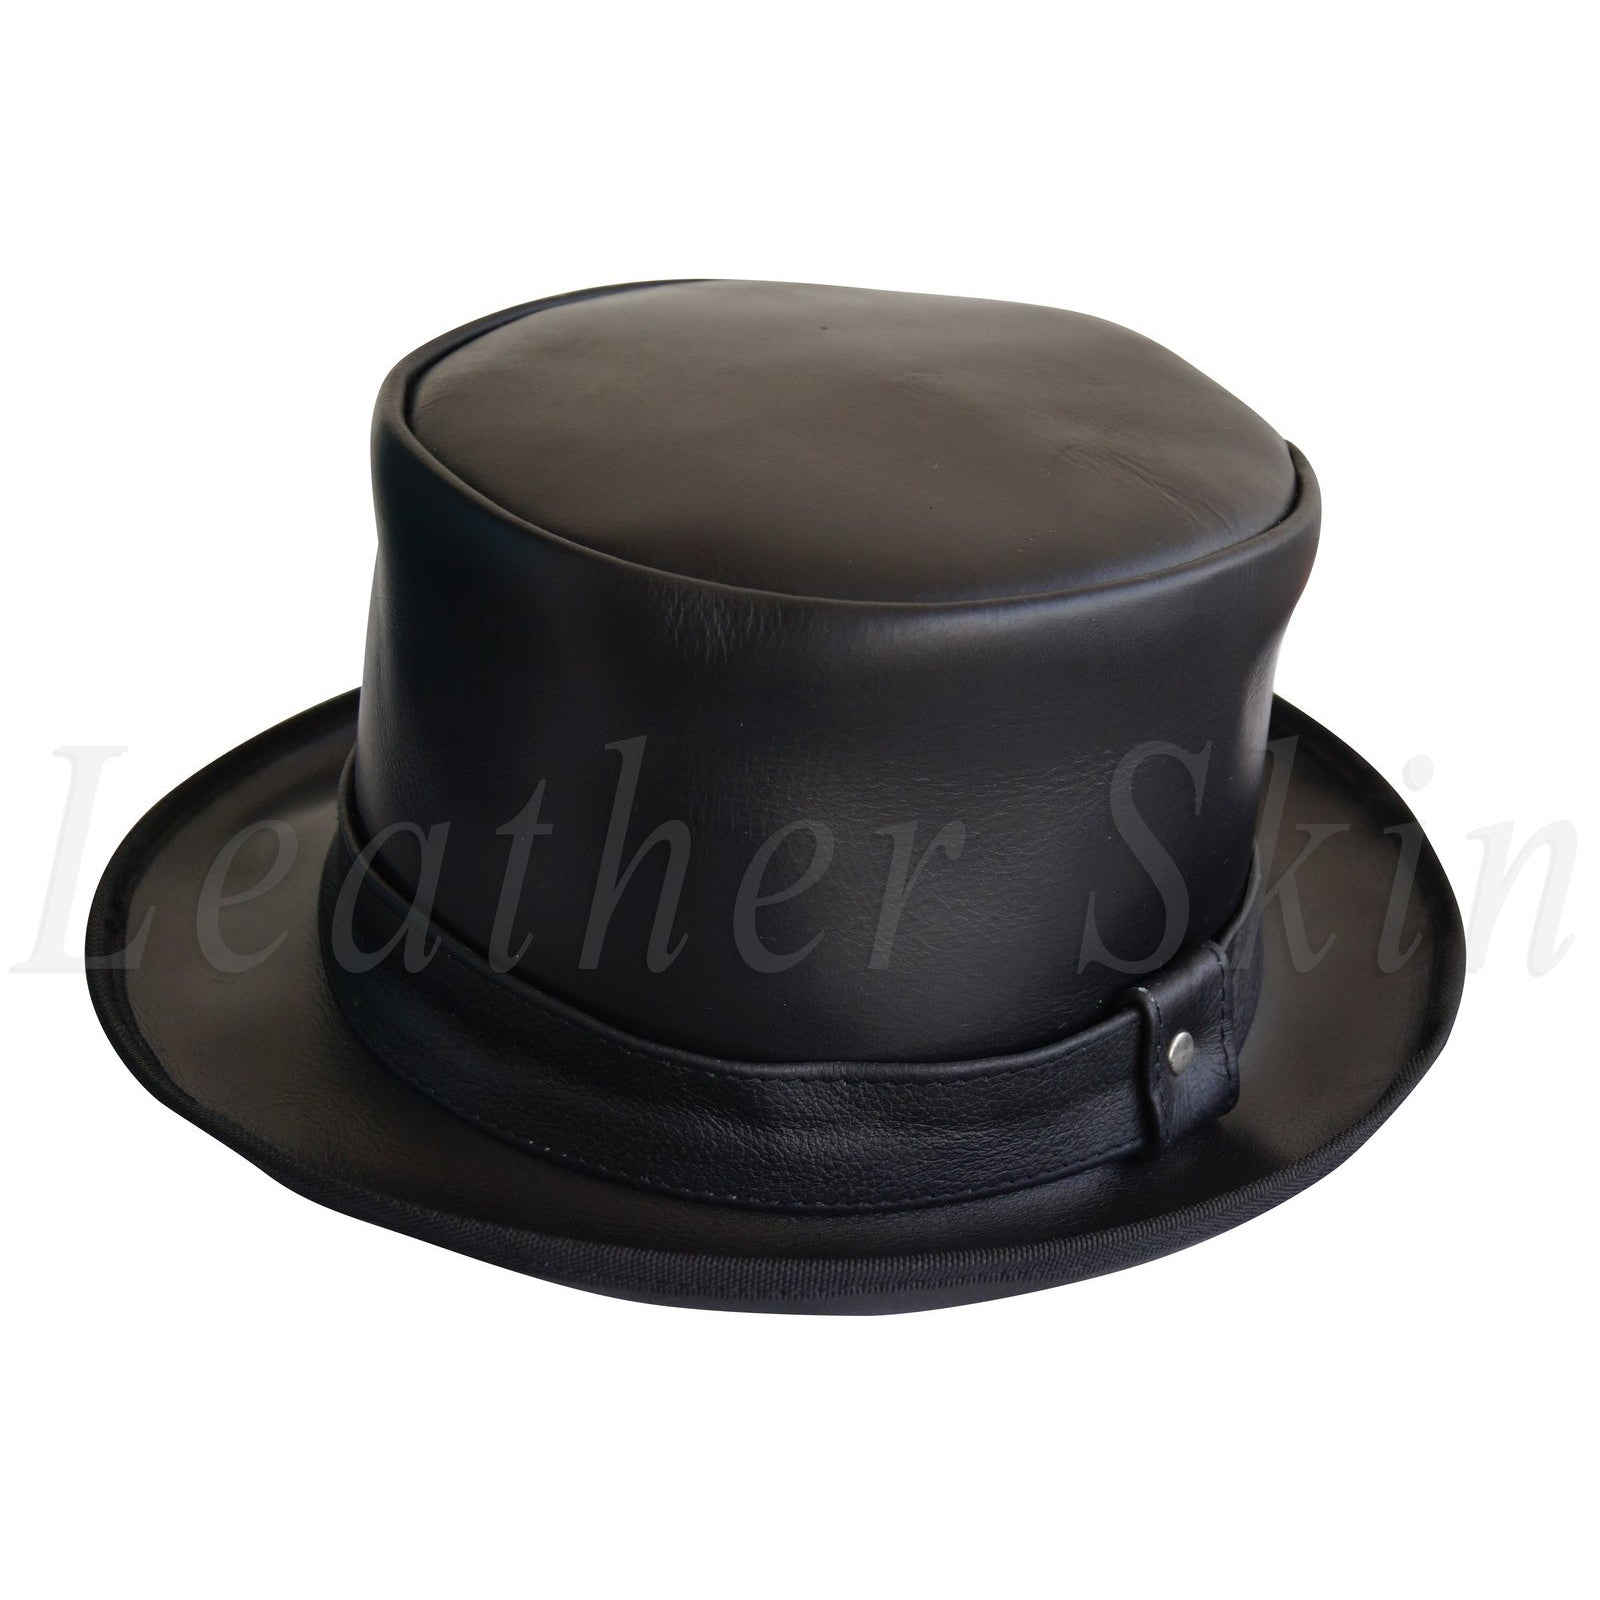 Black Vintage Style Leather Hat English Men's and Women's Jazz Ska